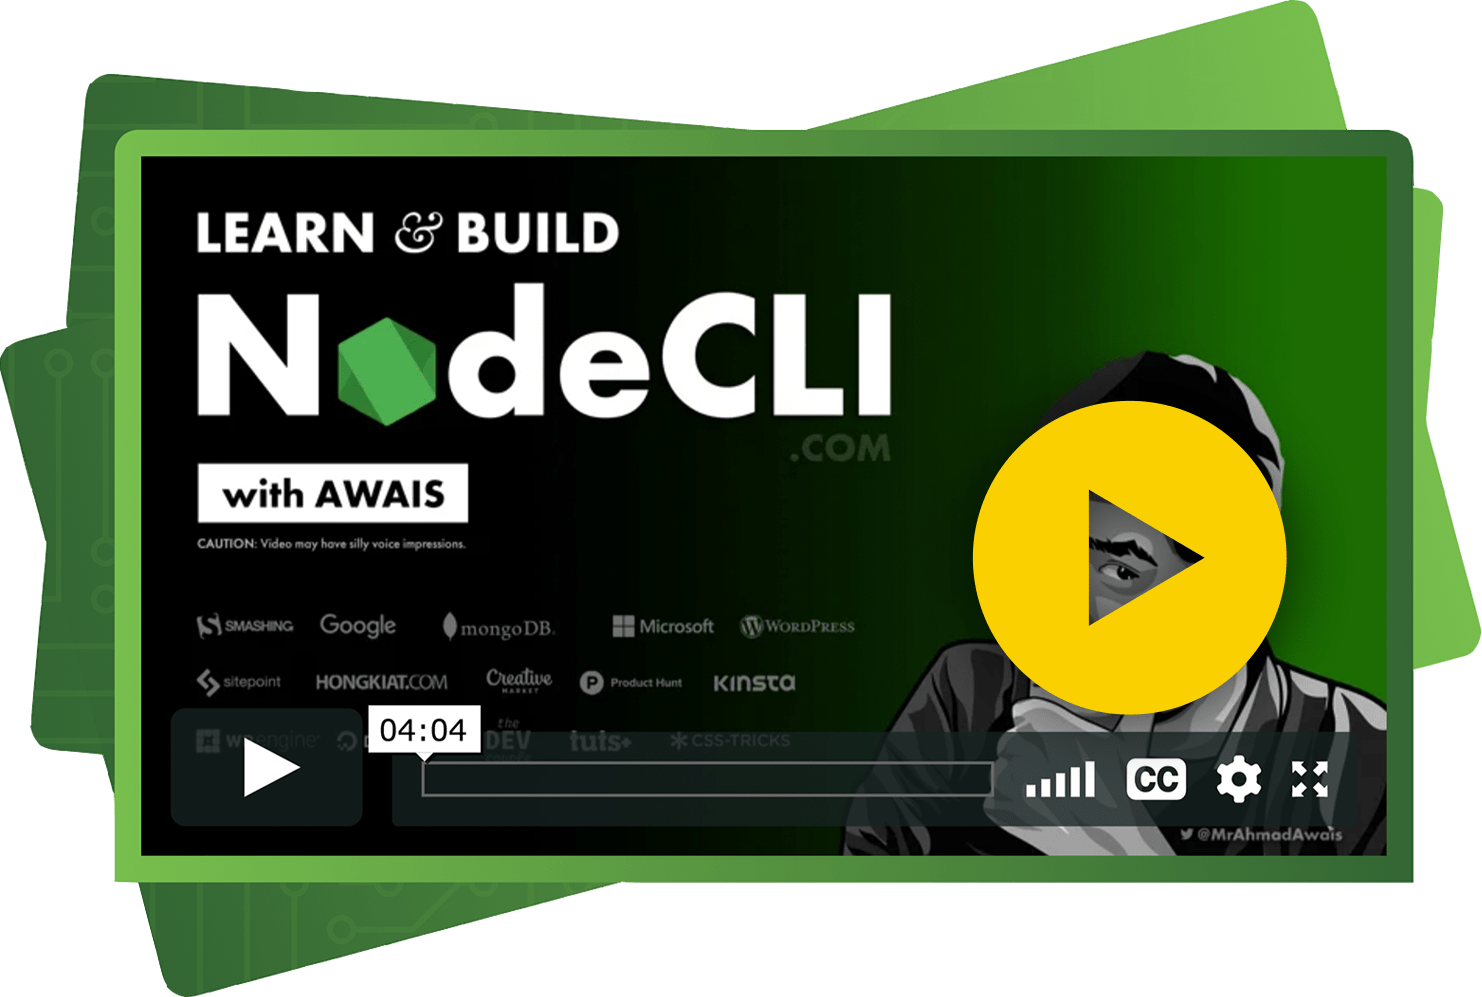 NodeCLI.com Course: Build CLI Apps